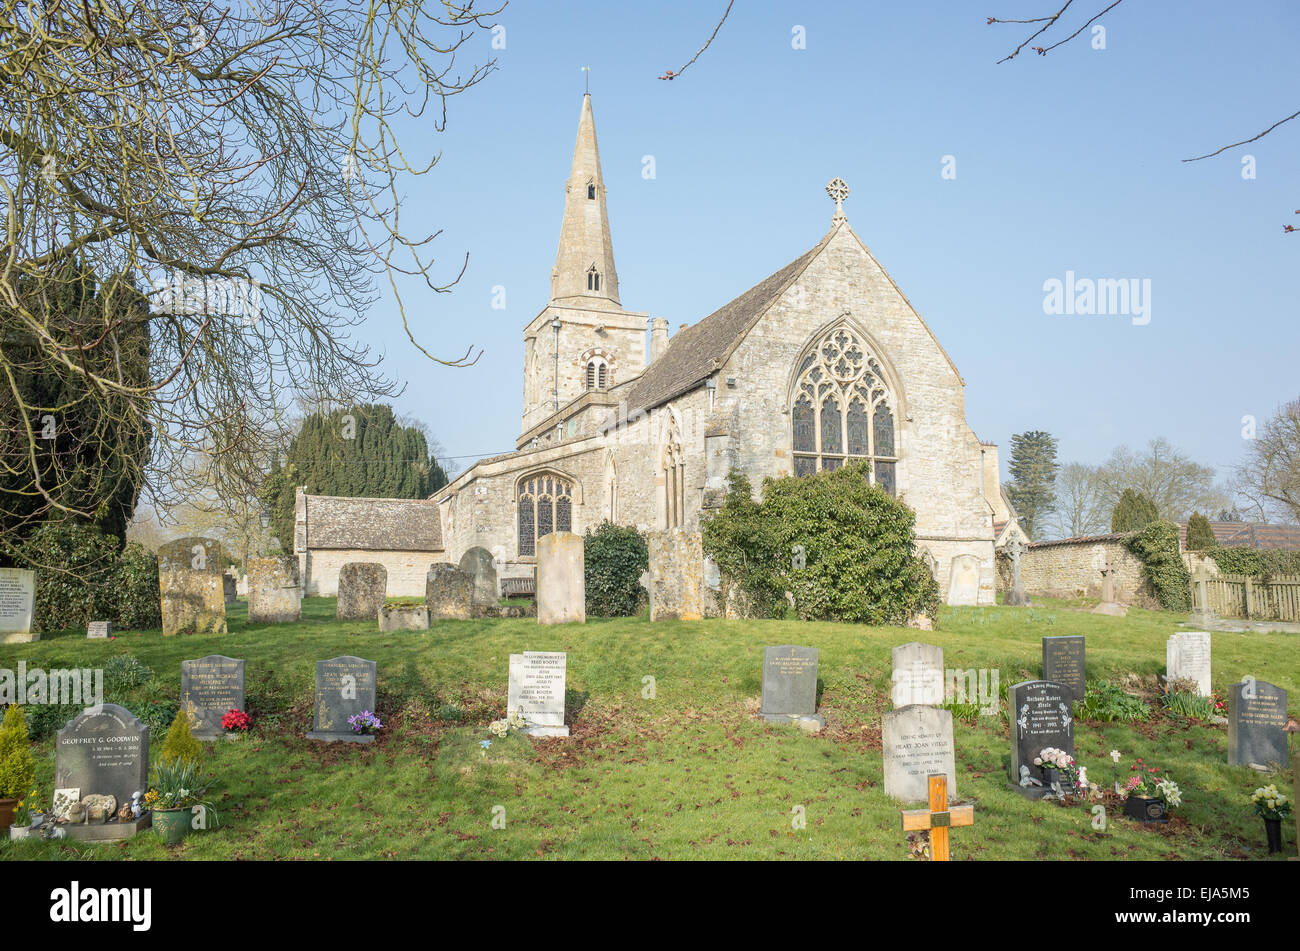 The medieval village church and cemetery at the english village of Grafton Underwood (mentioned in the doomsday - Stock Image